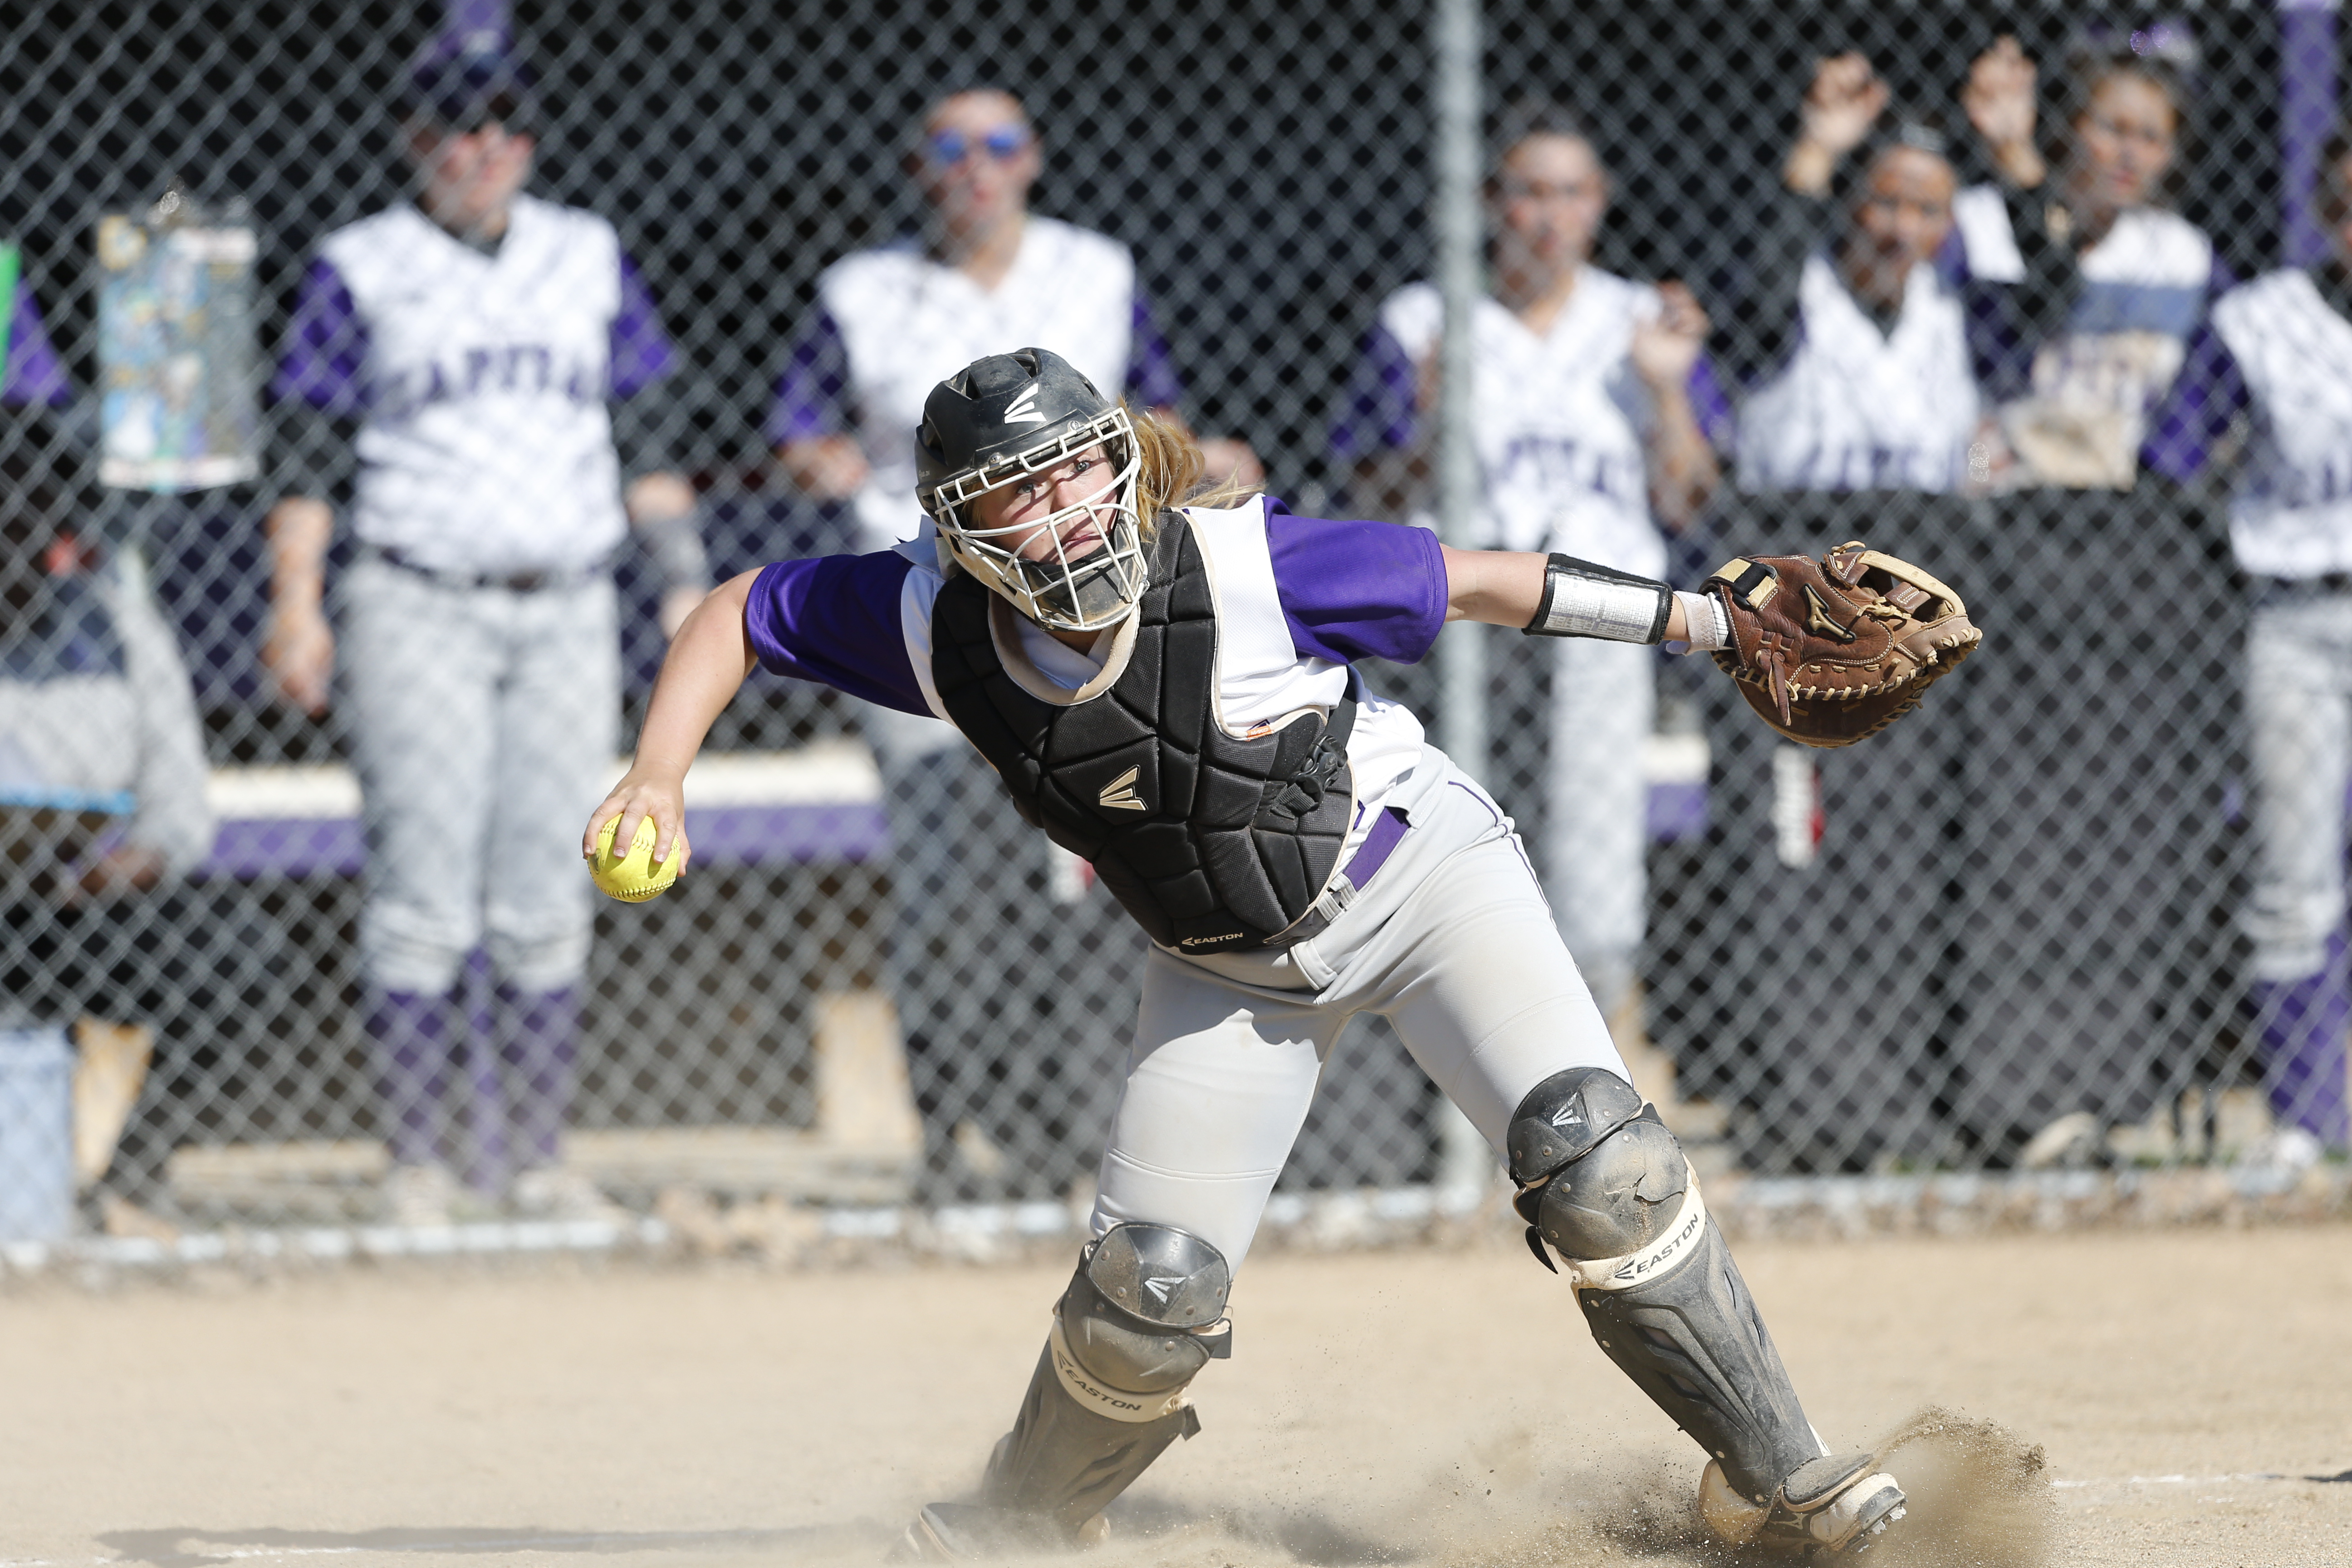 Softball is back, bigger, and better than before